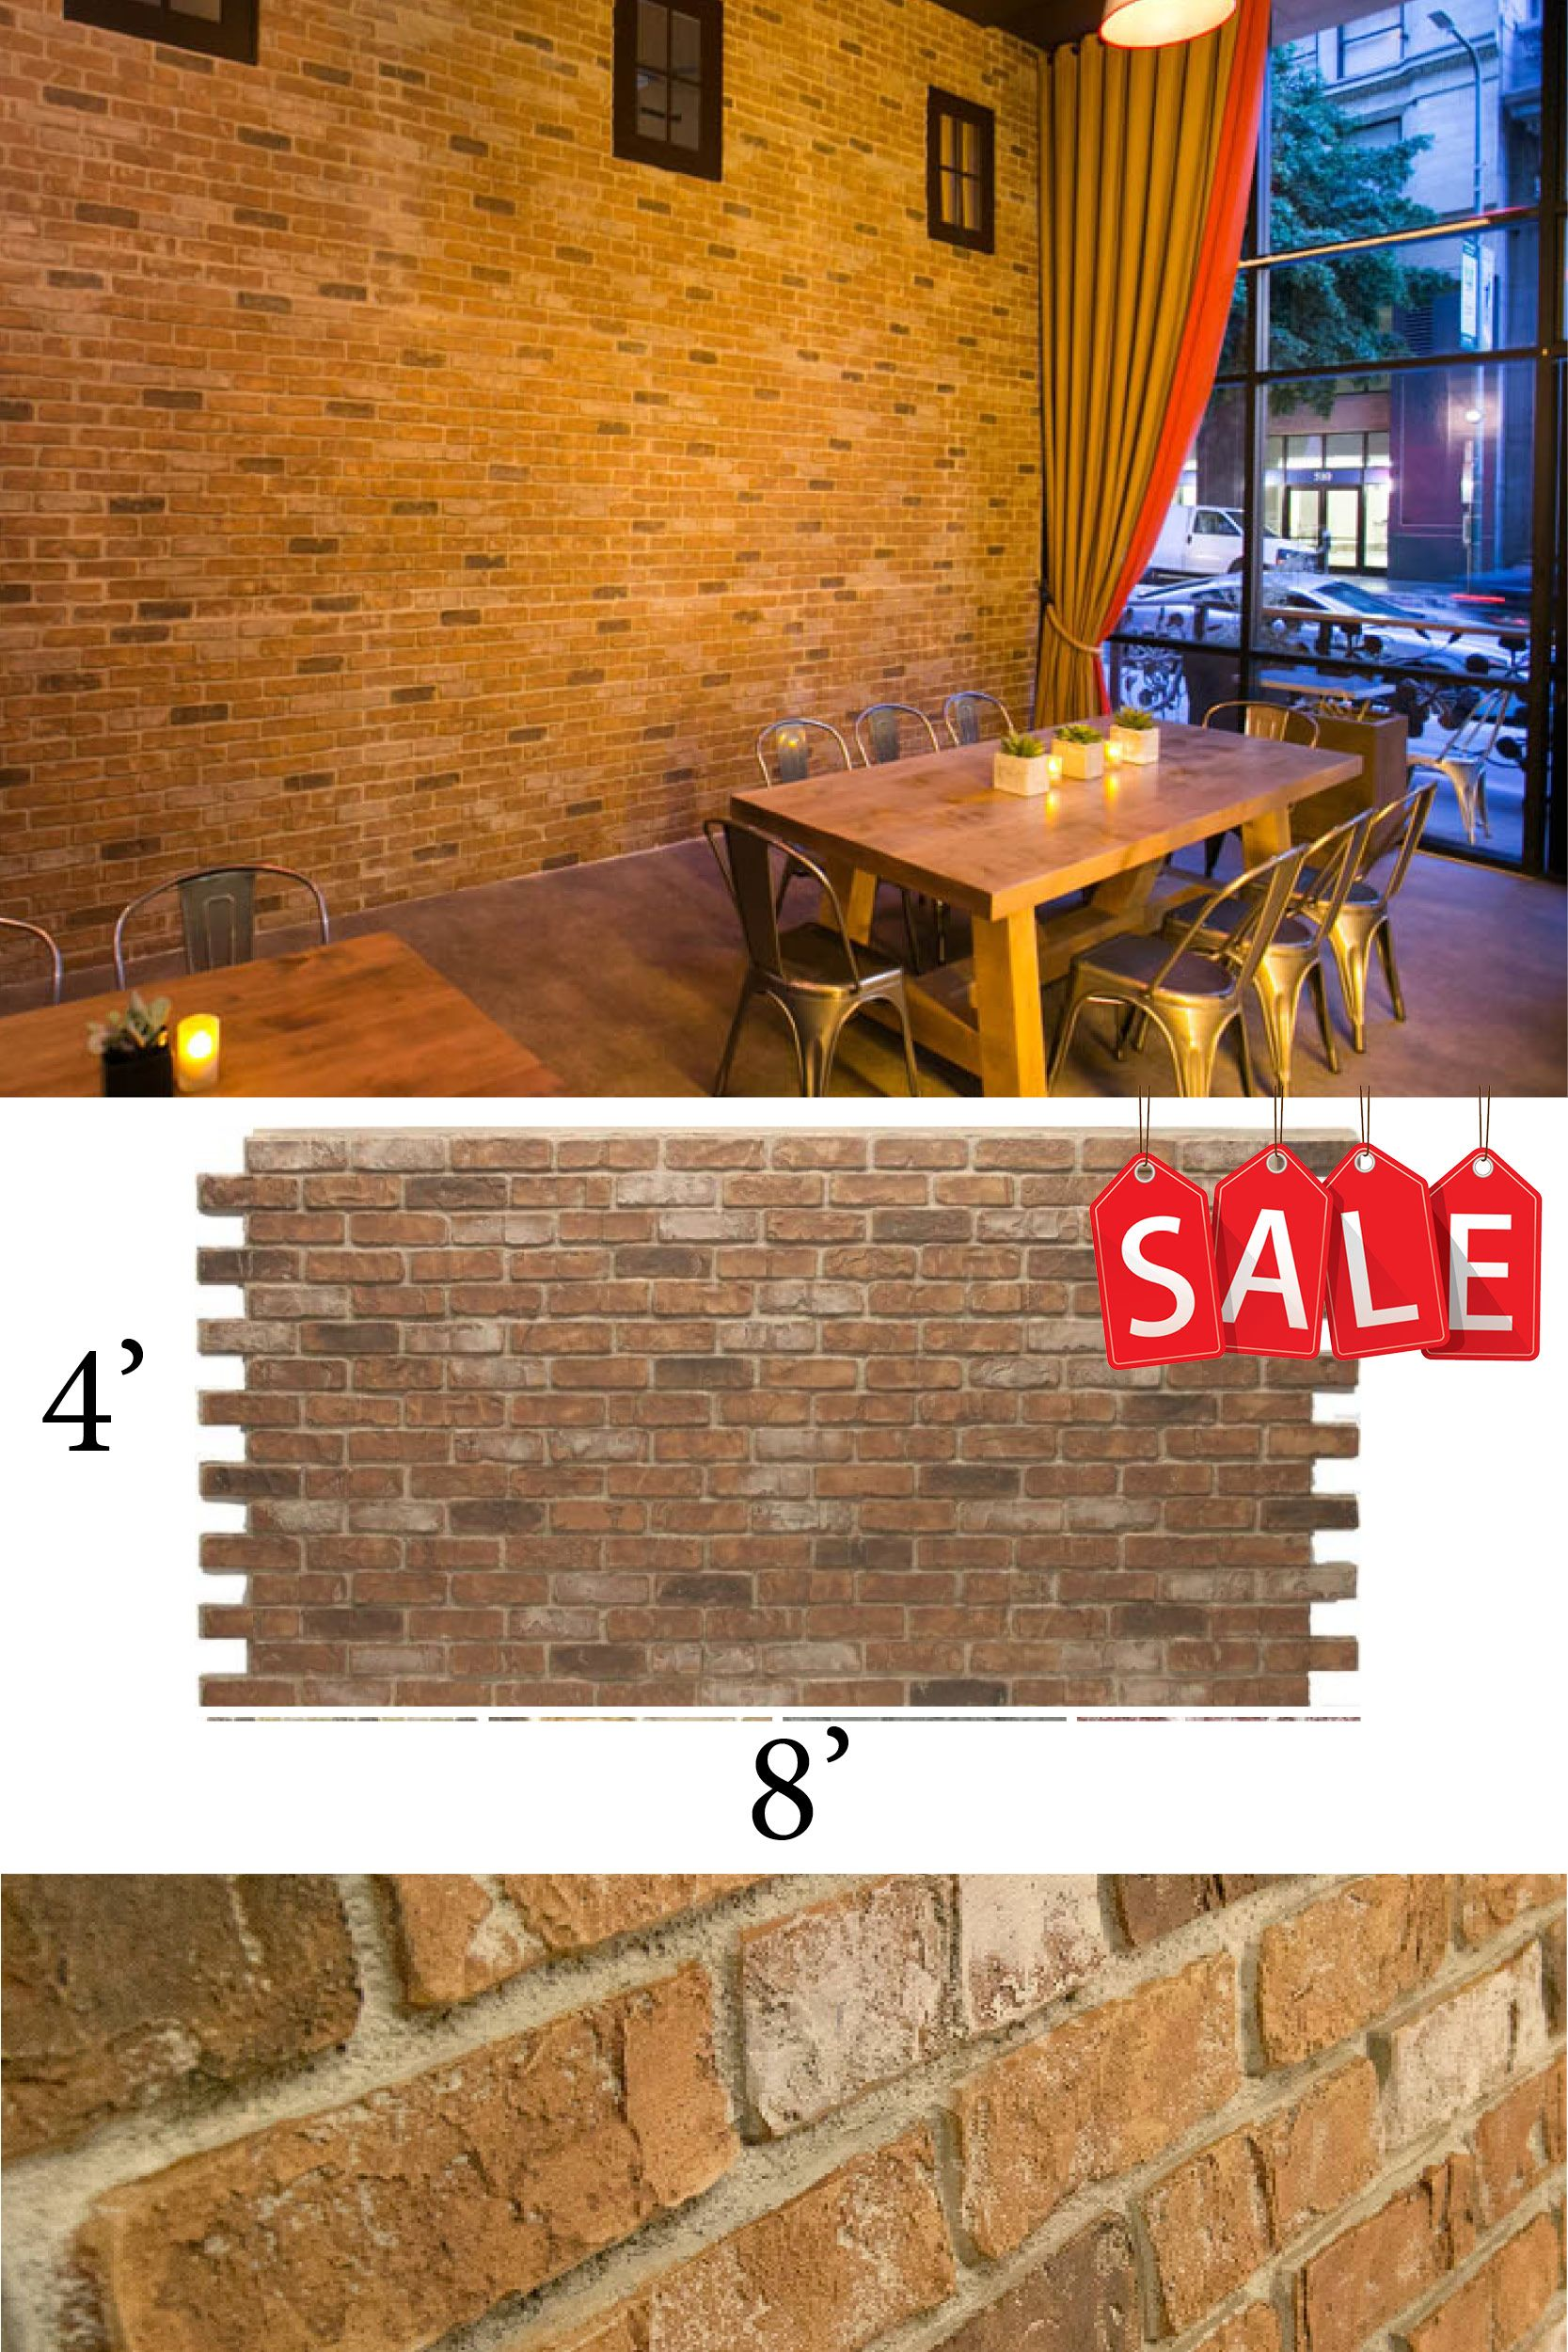 Diy Fake Brick Wall Used Brick Panels On Sale For Limited Time This Color Is Weathered Orange Most Realistic Fake Brick On The Market Attache Fake Brick Wall